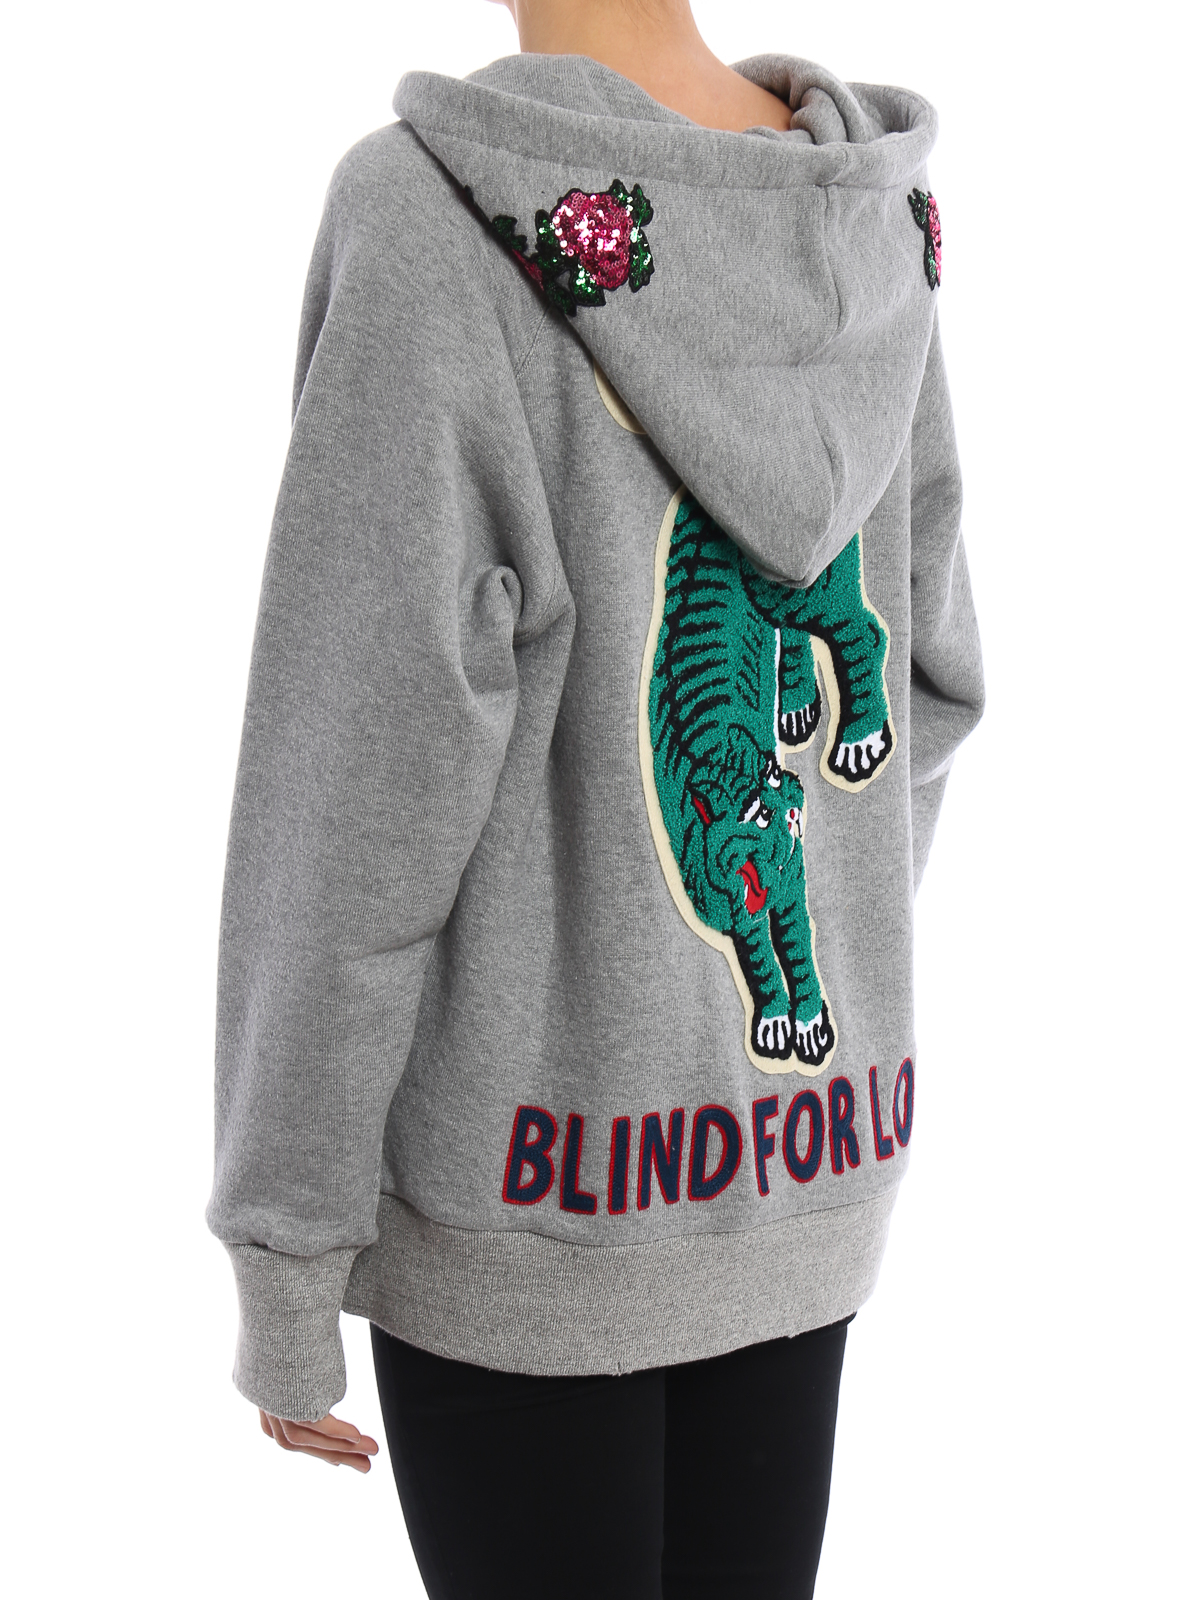 Gucci Blind For Love Sweater Sweatshirts Amp Sweaters